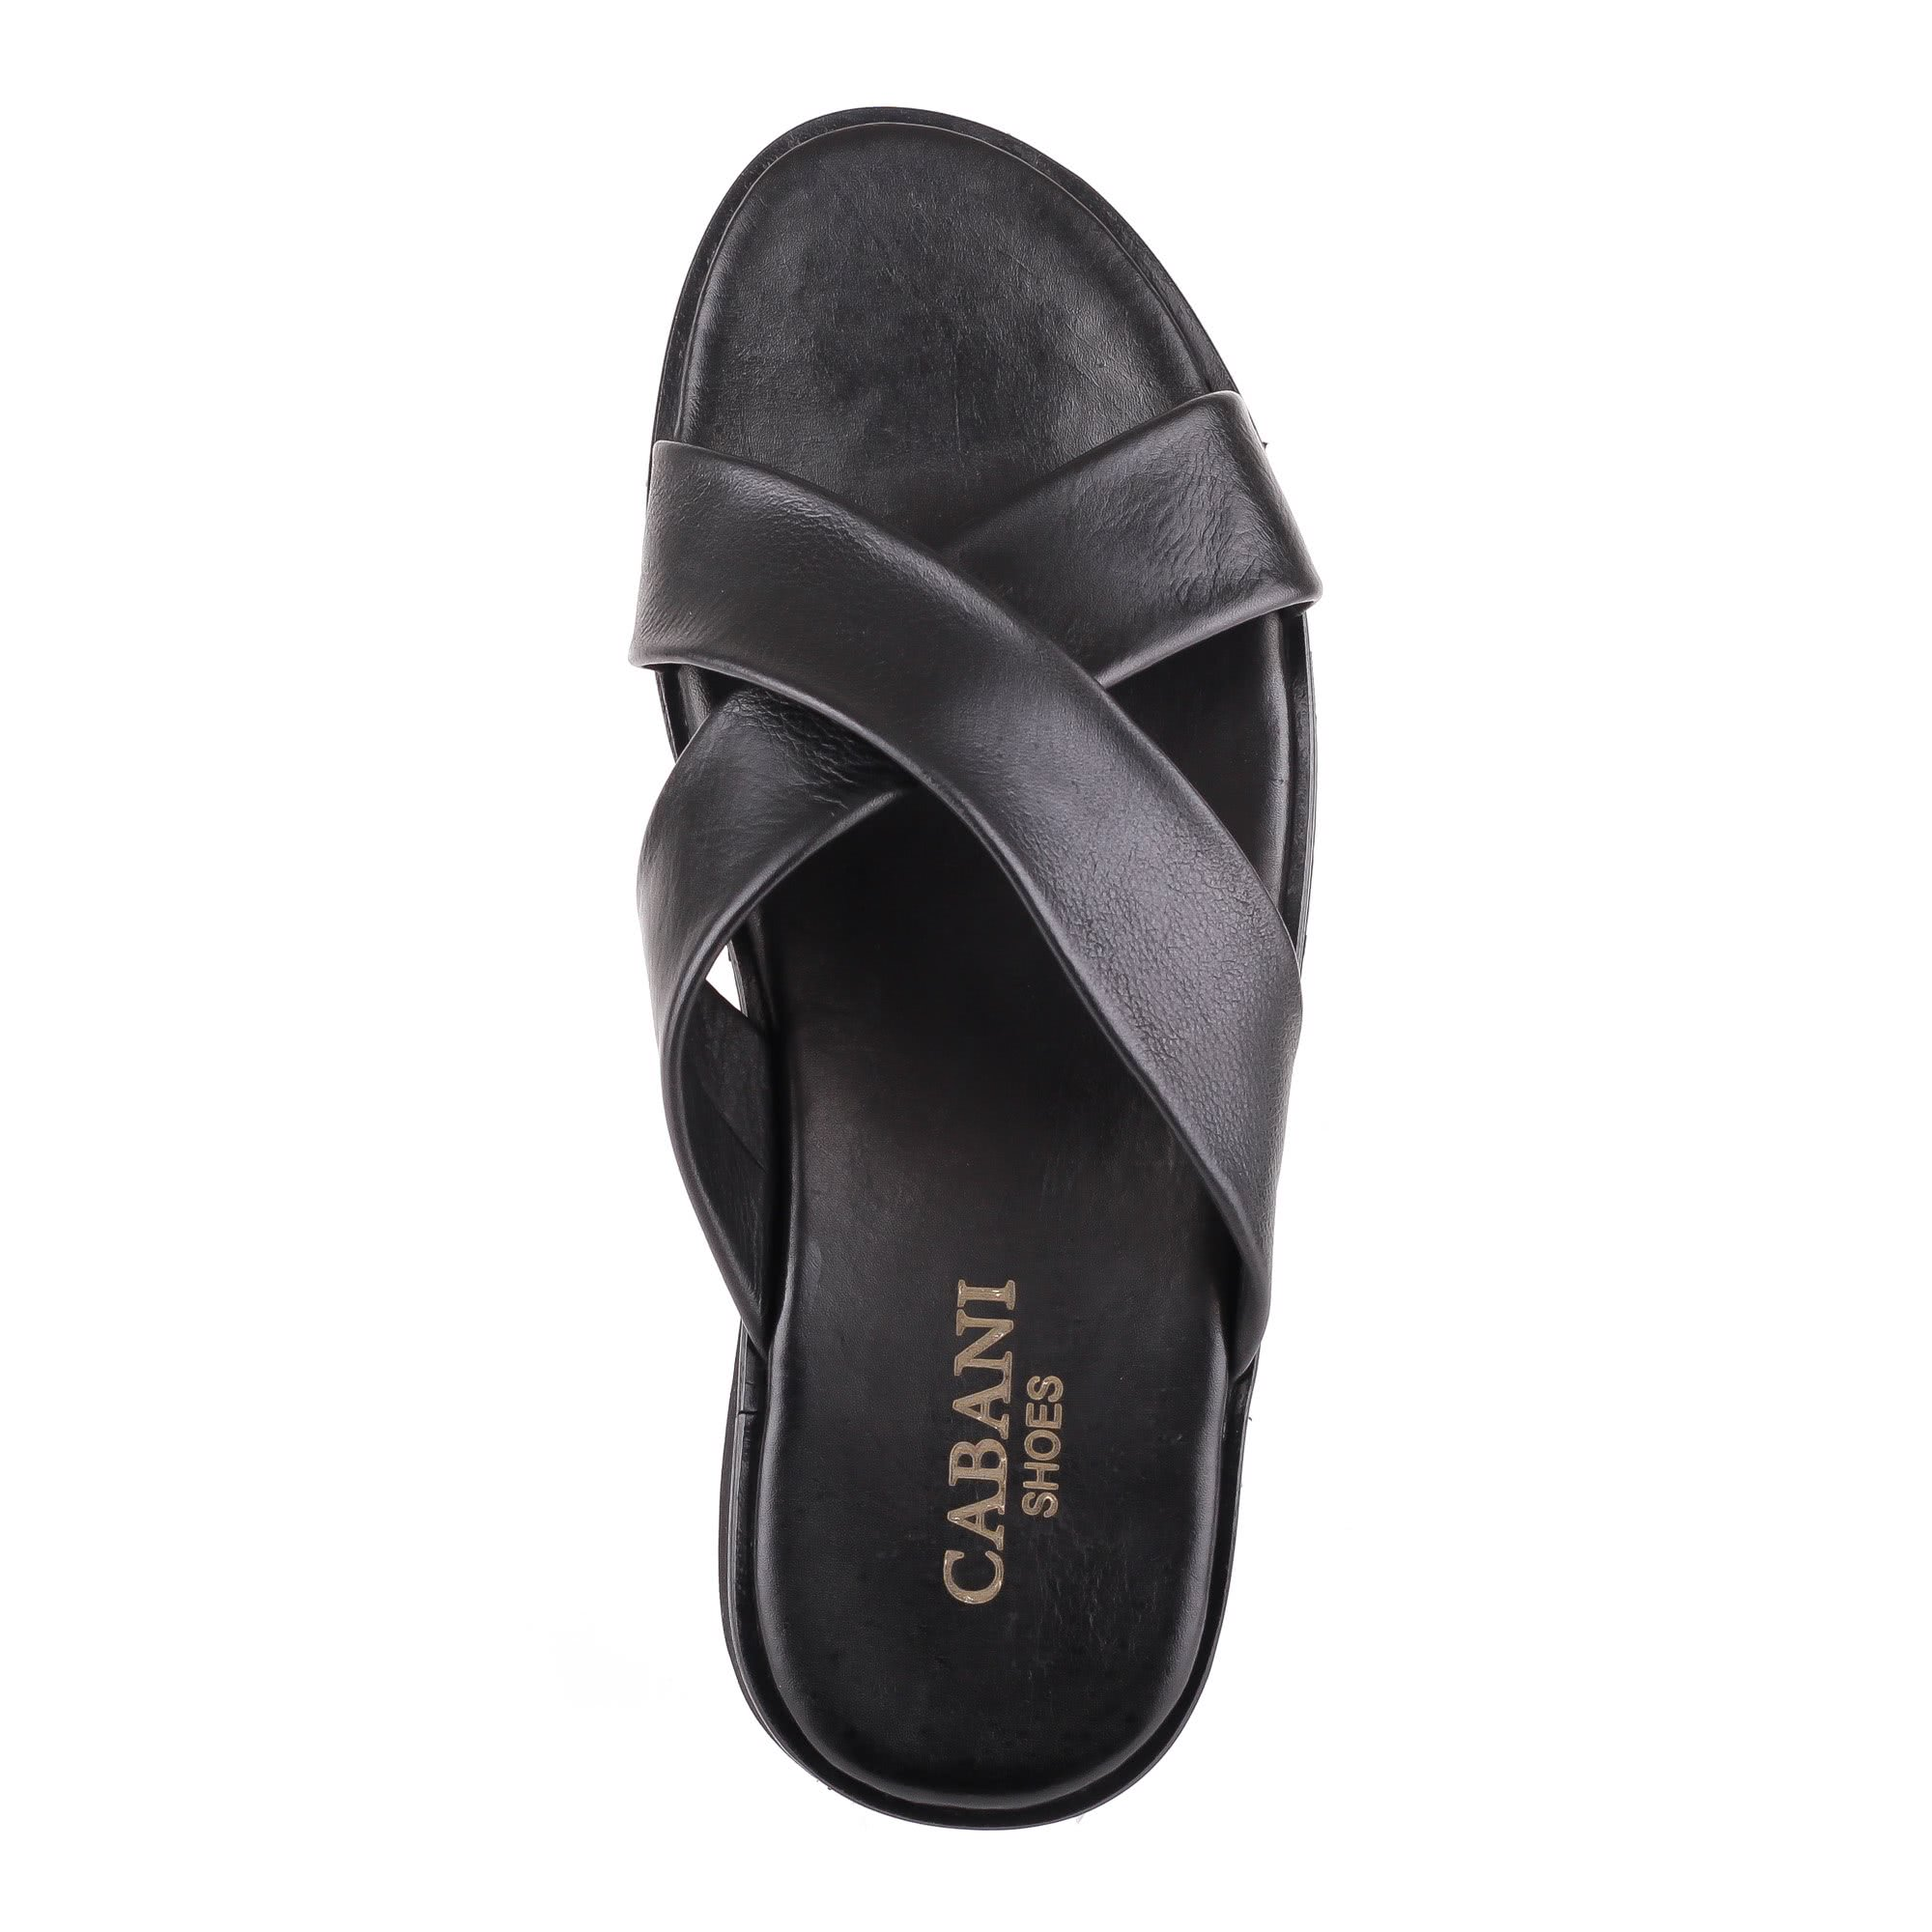 Шлепанцы Cabani Shoes S1663